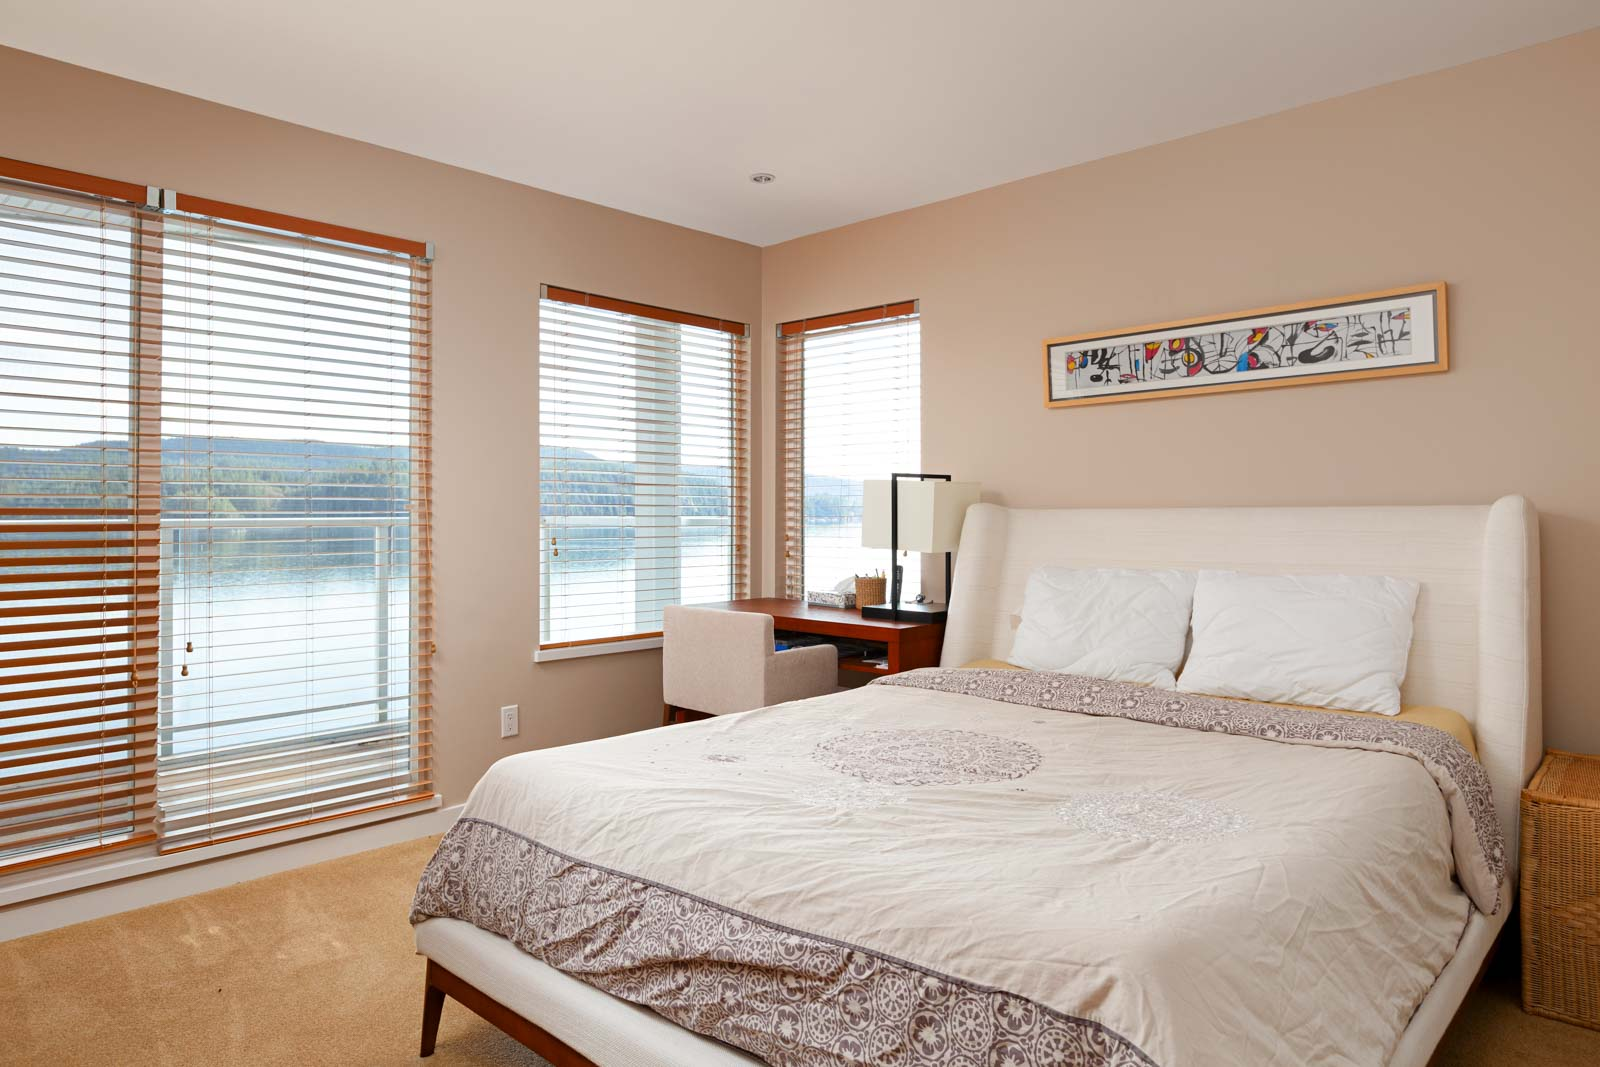 North Vancouver luxury bedroom overlooking waterfront view.